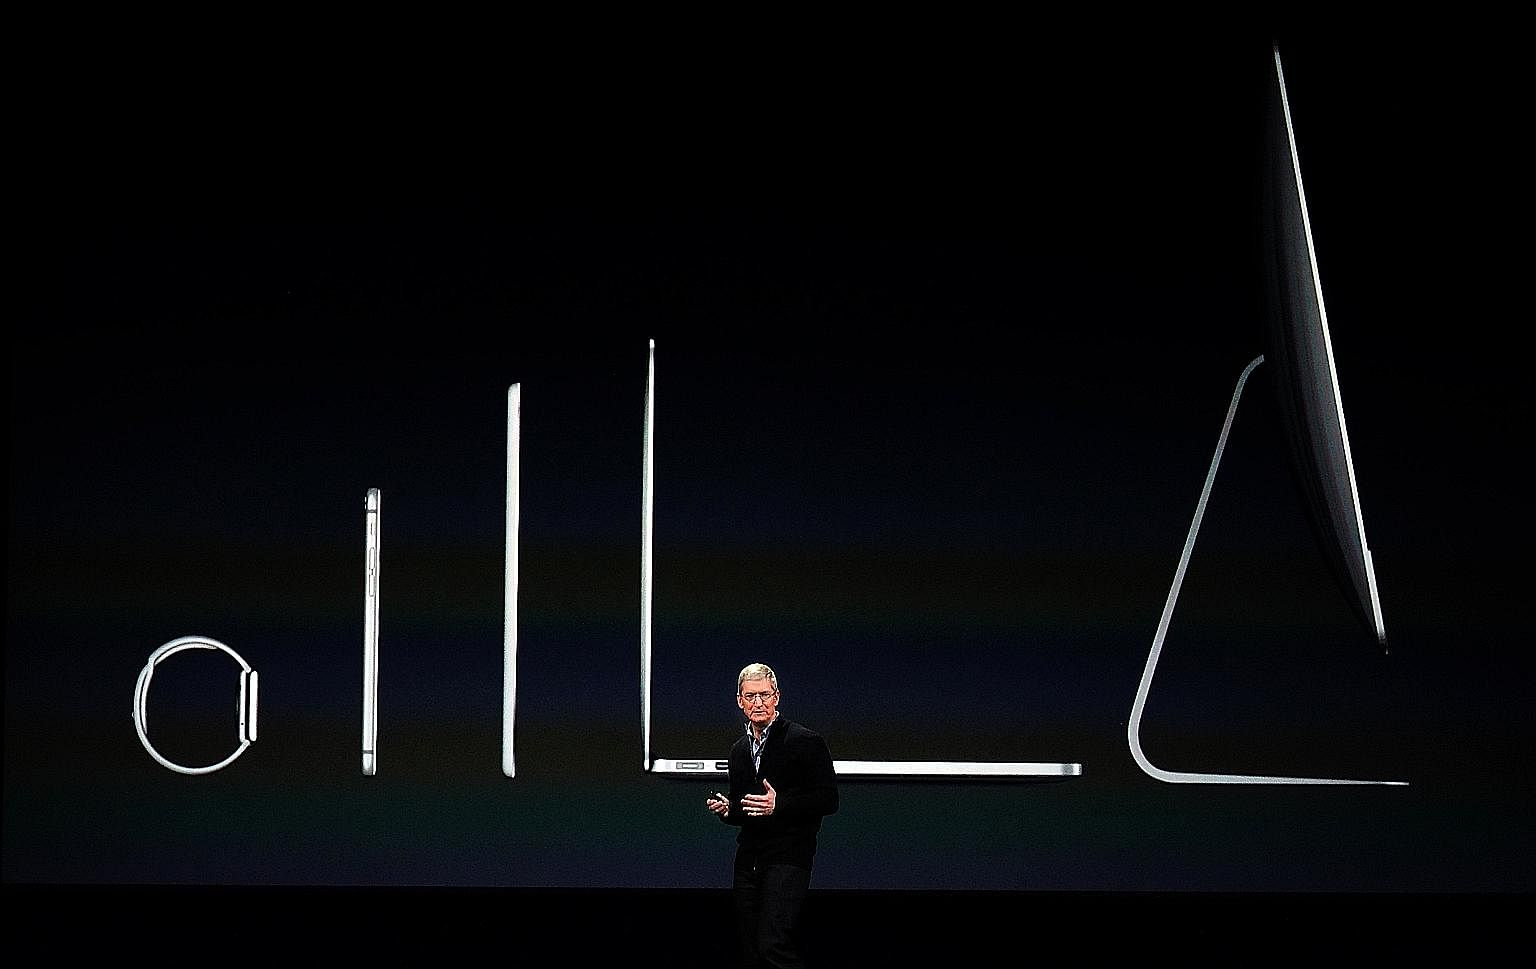 Mr Cook speaking at the March 2015 Spring Forward Event in Cupertino. The next five years will be a testing time for the Apple CEO.